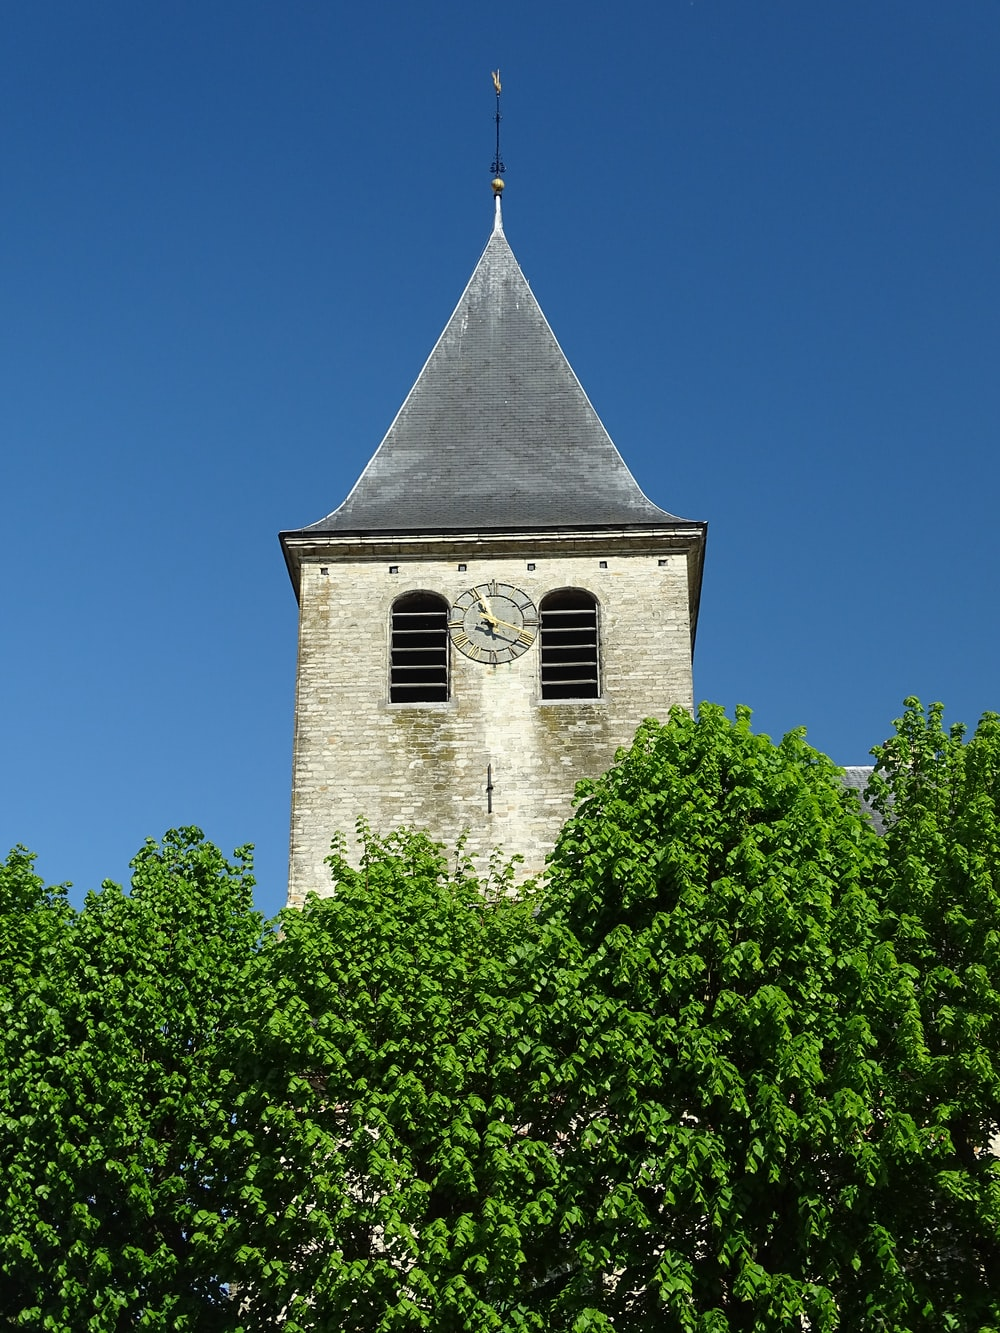 brown concrete church under blue sky during daytime